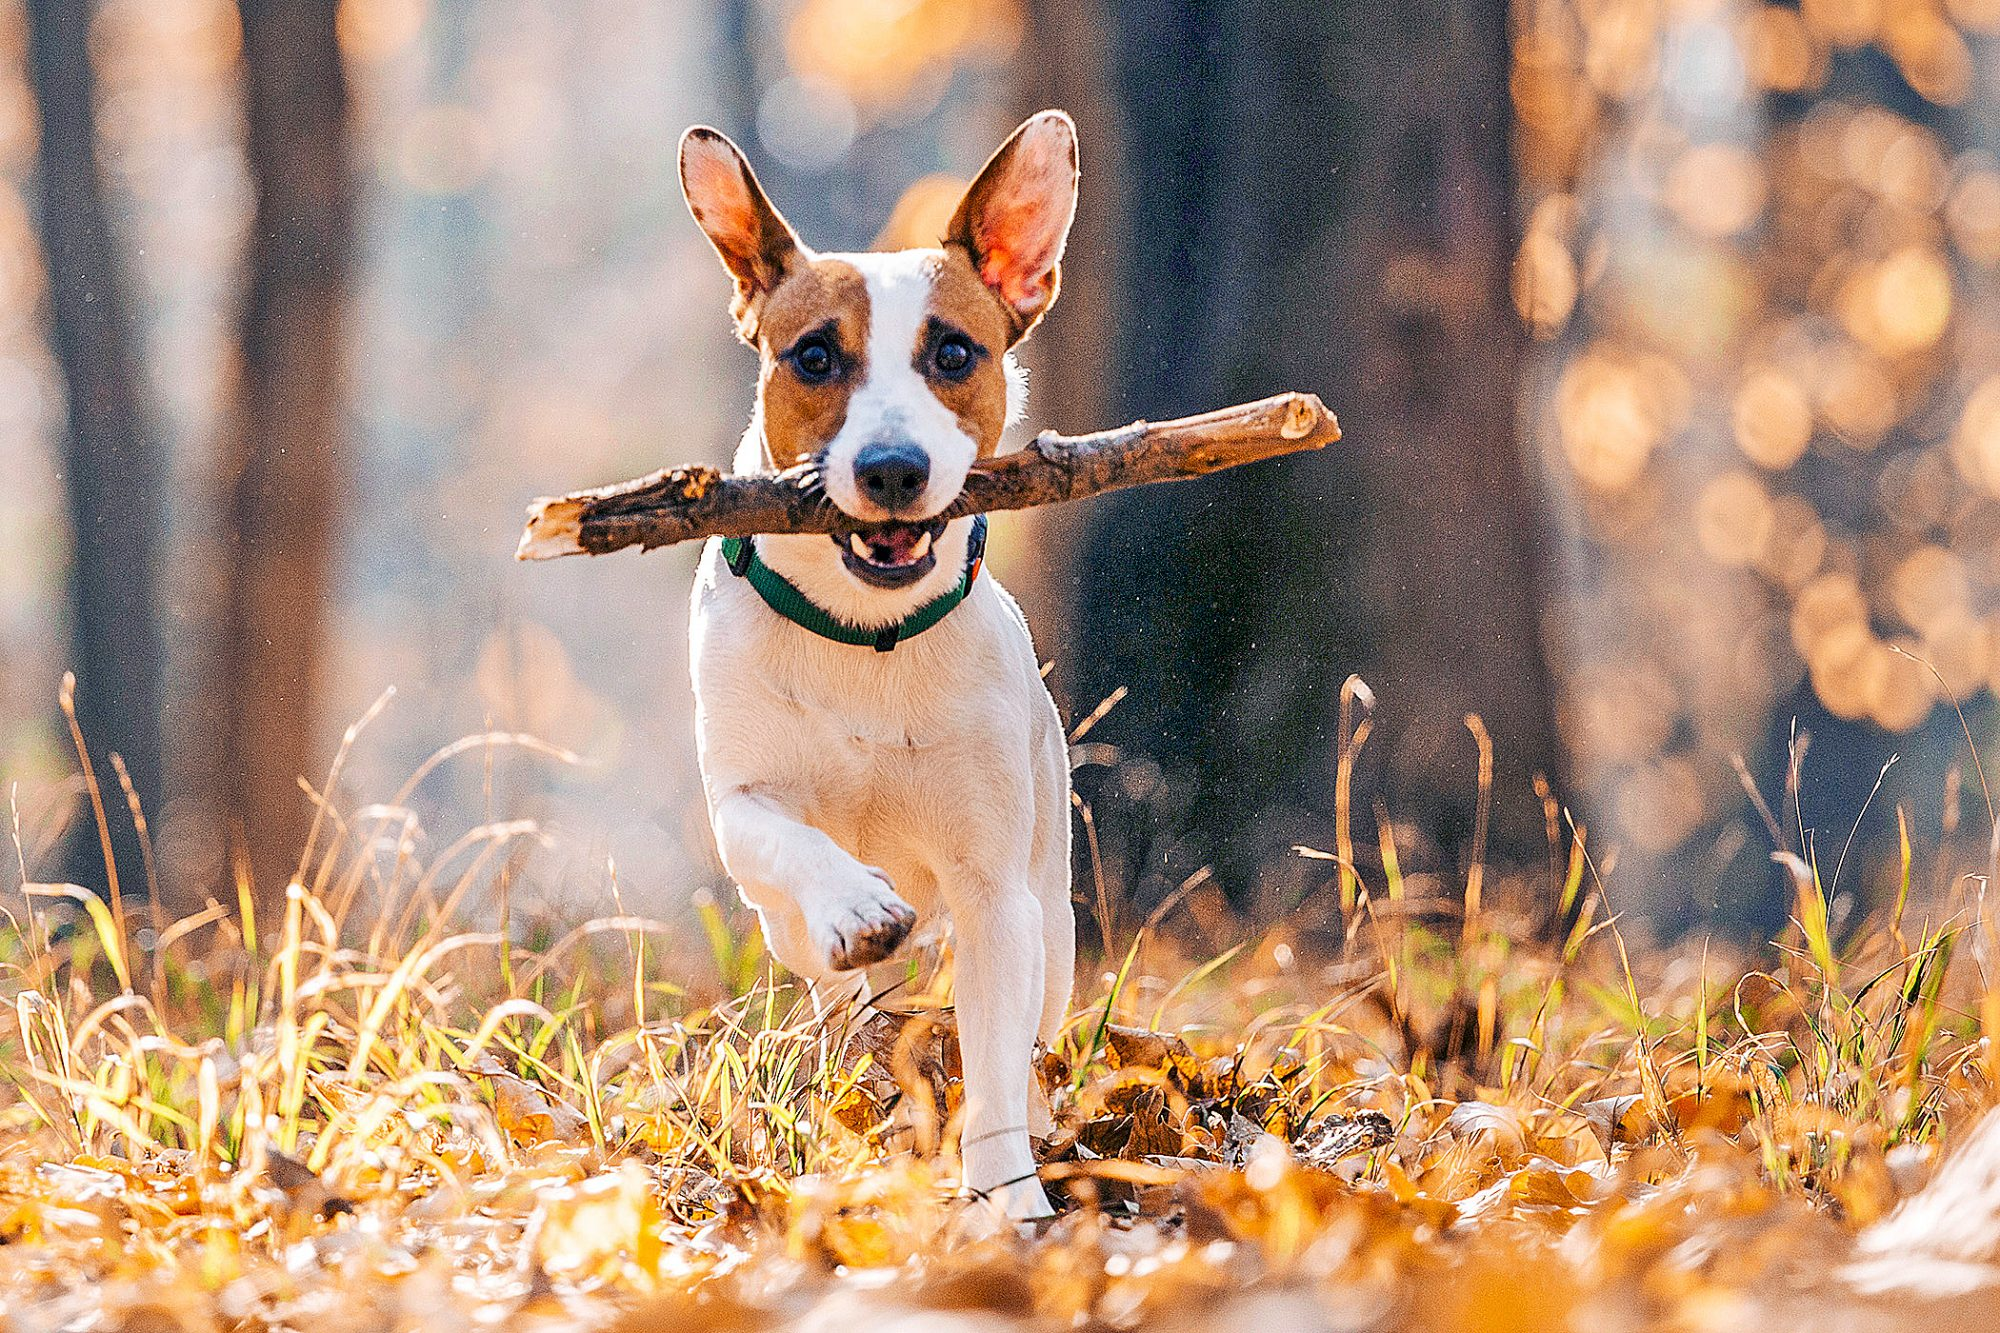 Jack Russell Terrier running with stick